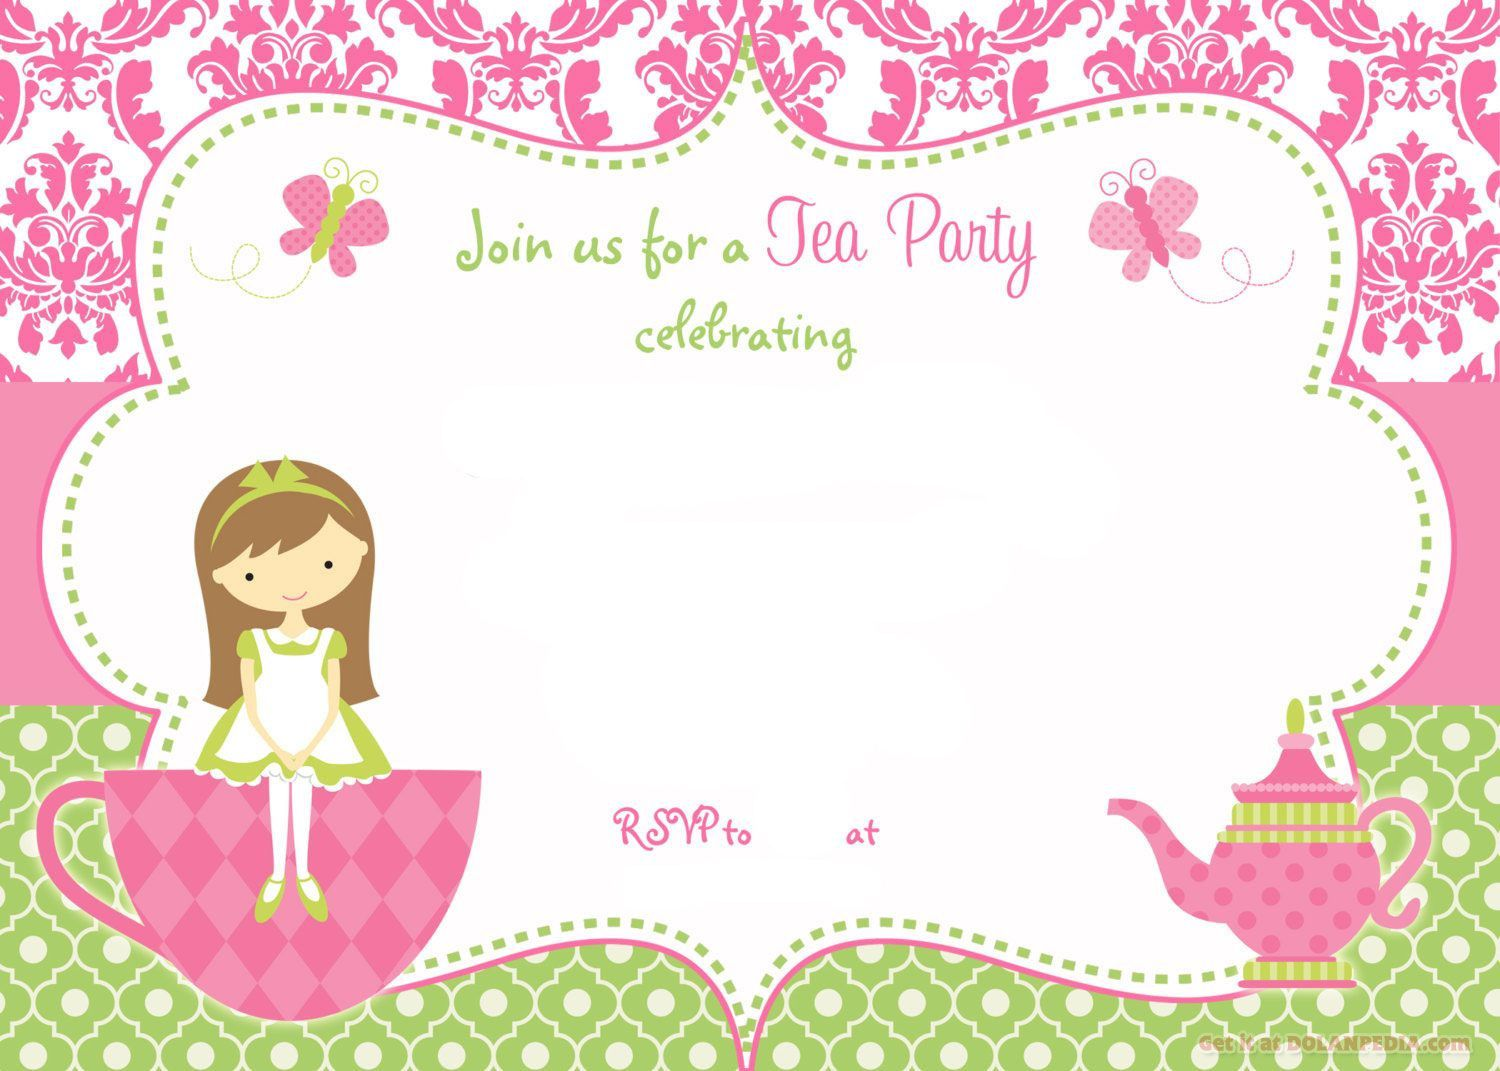 002 Shocking Tea Party Invitation Template High Def  Card Victorian Wording For Bridal ShowerFull